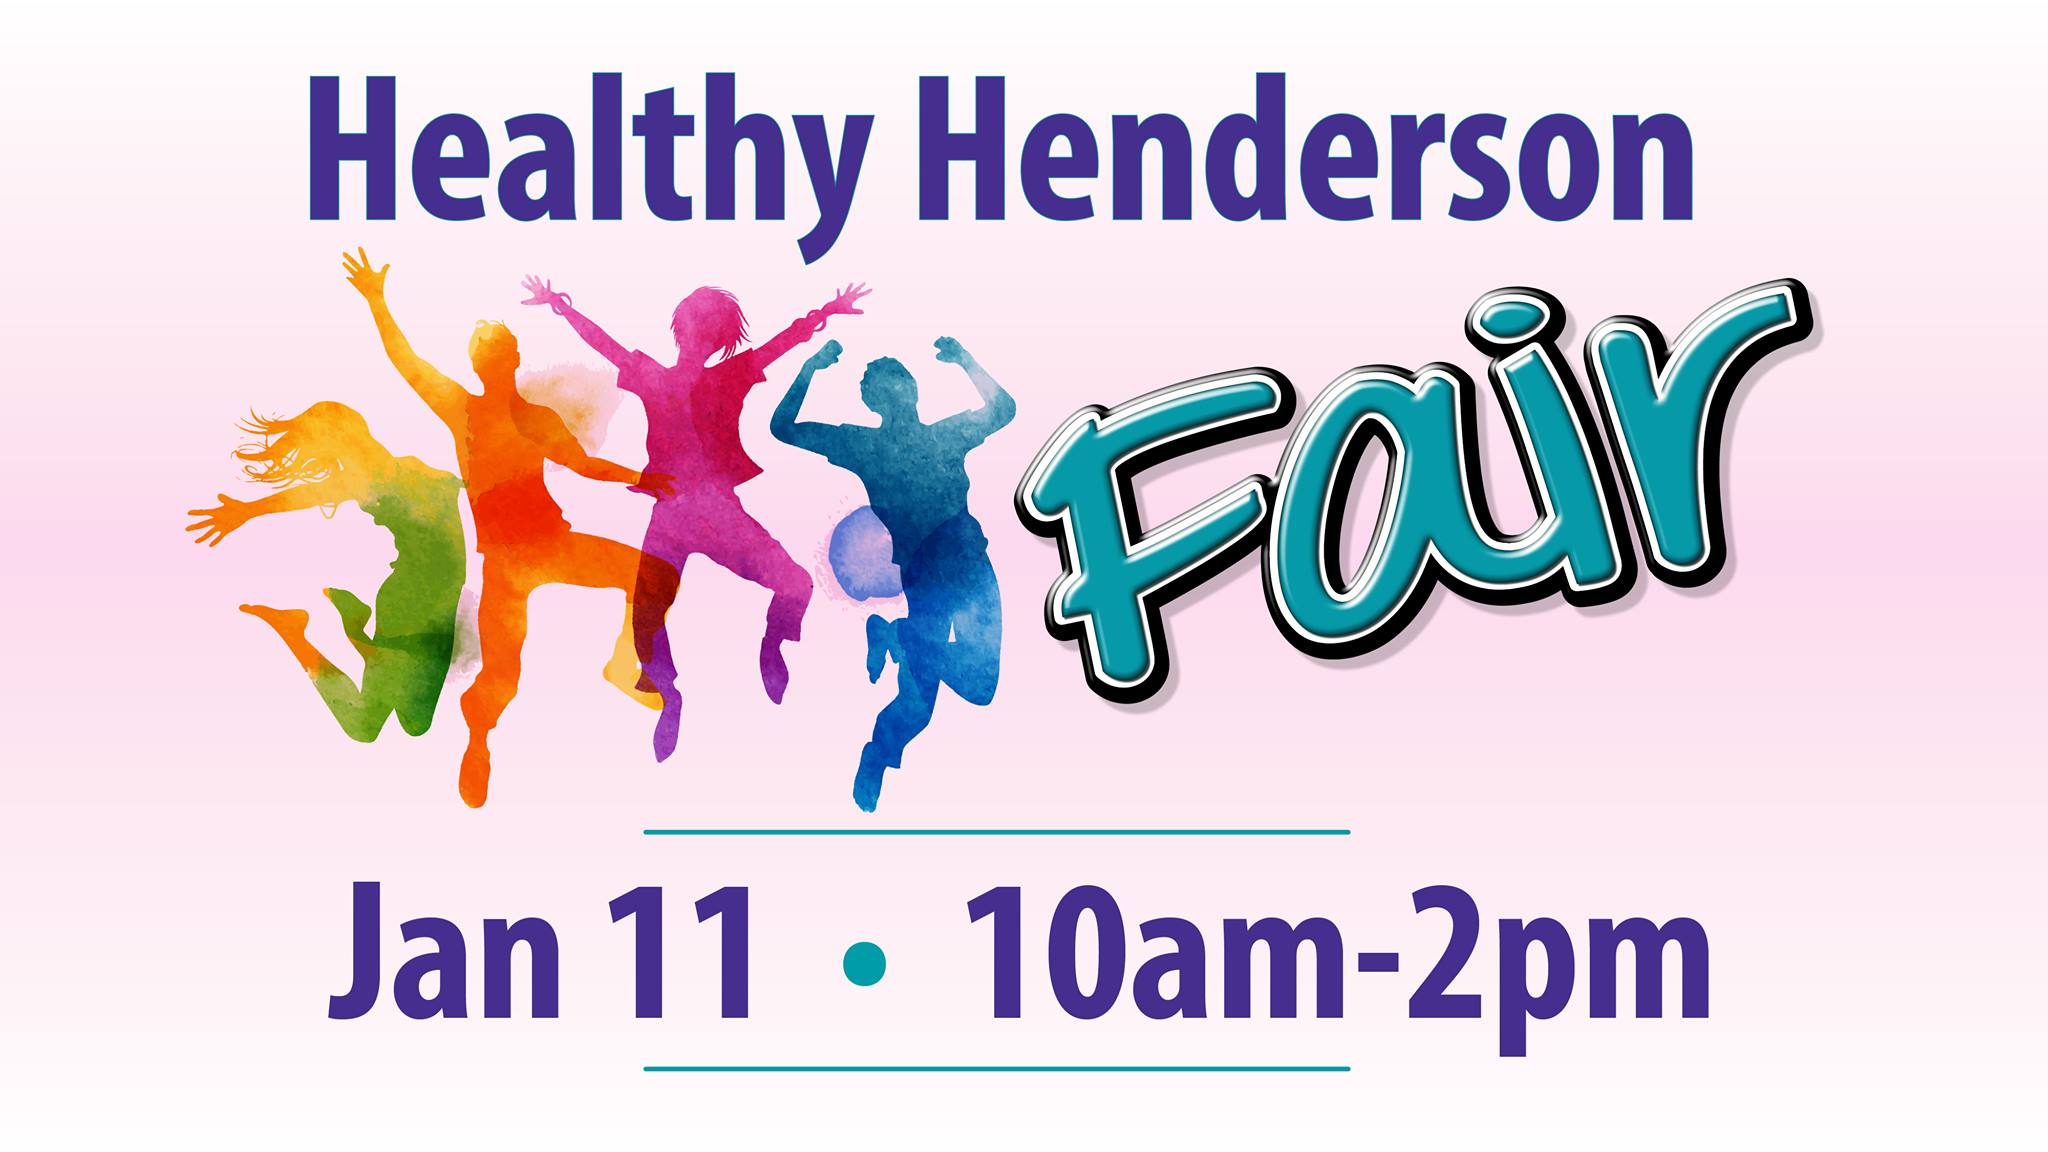 healthy henderson fair poster free event